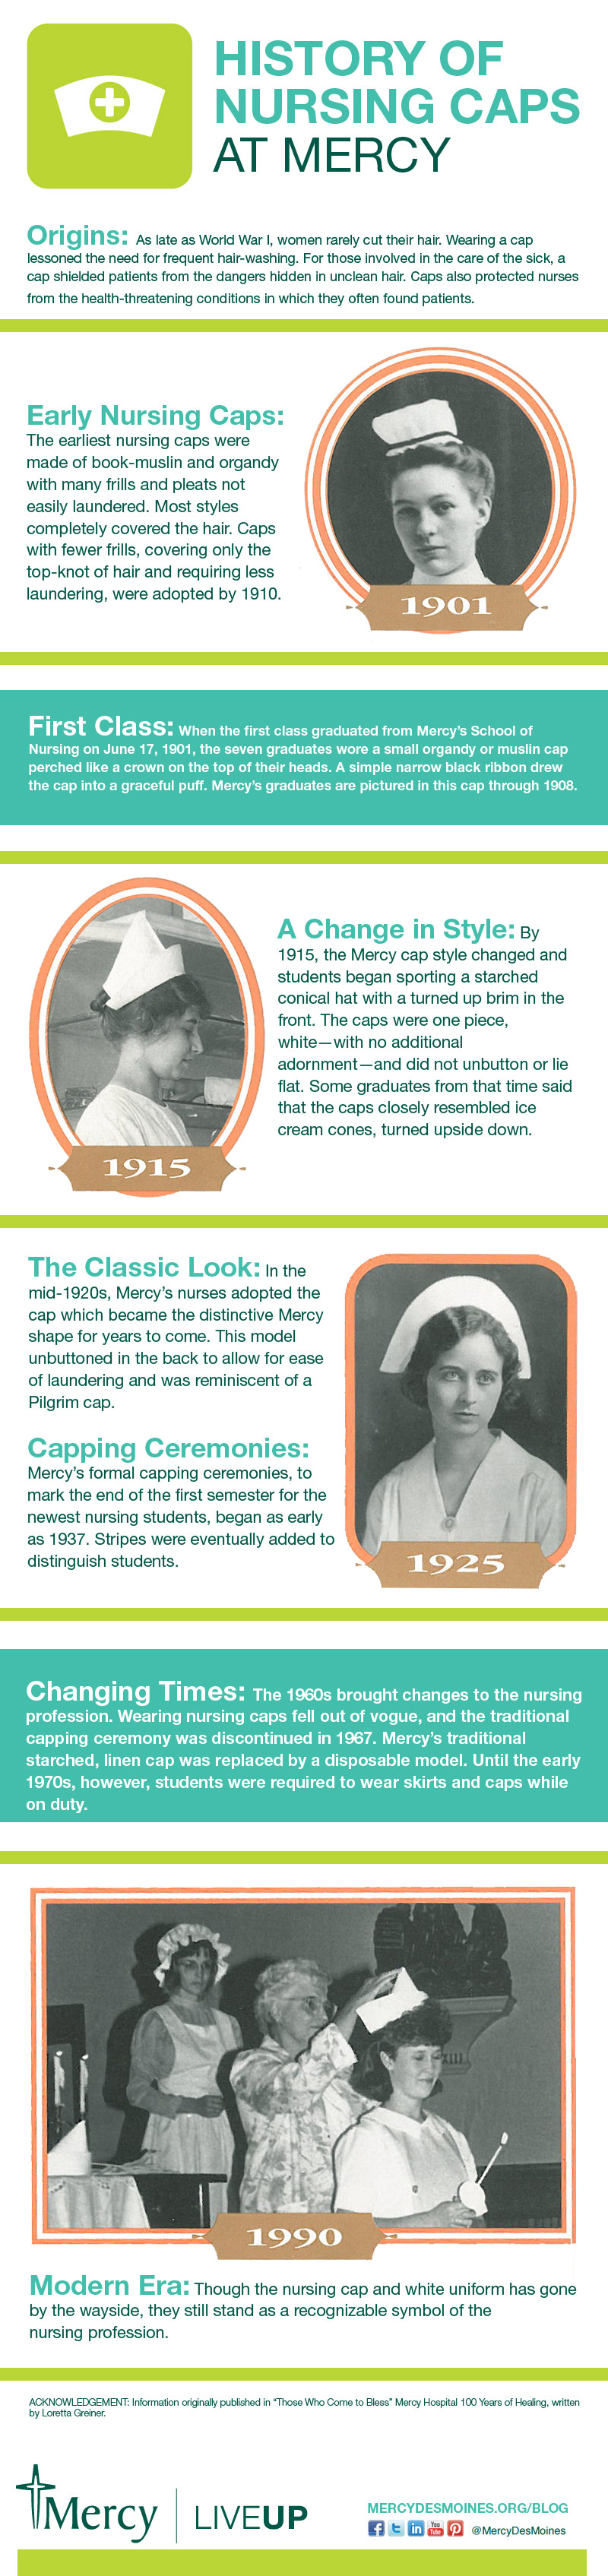 Mercy Nursing Caps - infographic